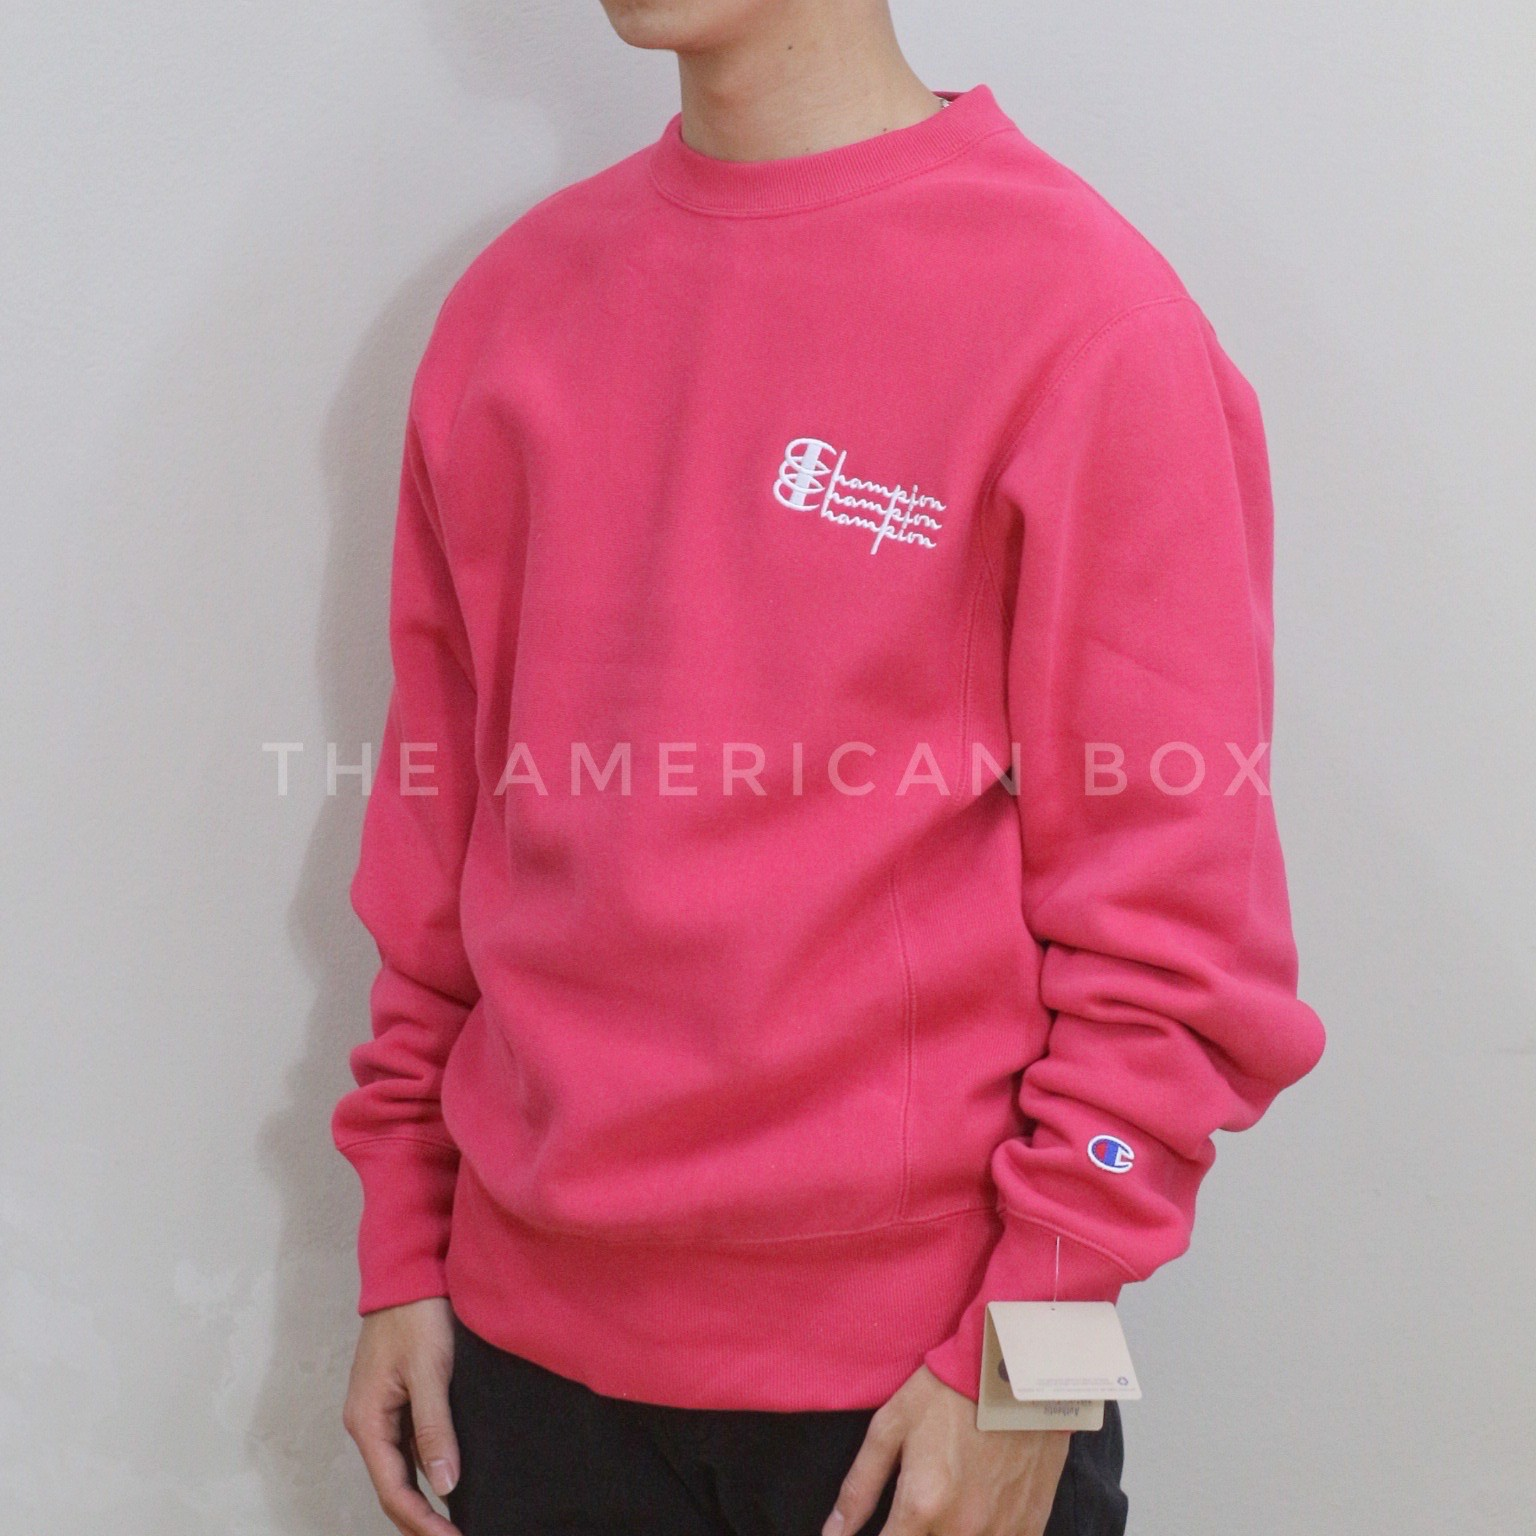 P100234 ÁO SWEATER CHAMPION TRIPLE SCRIPT CREWNECK